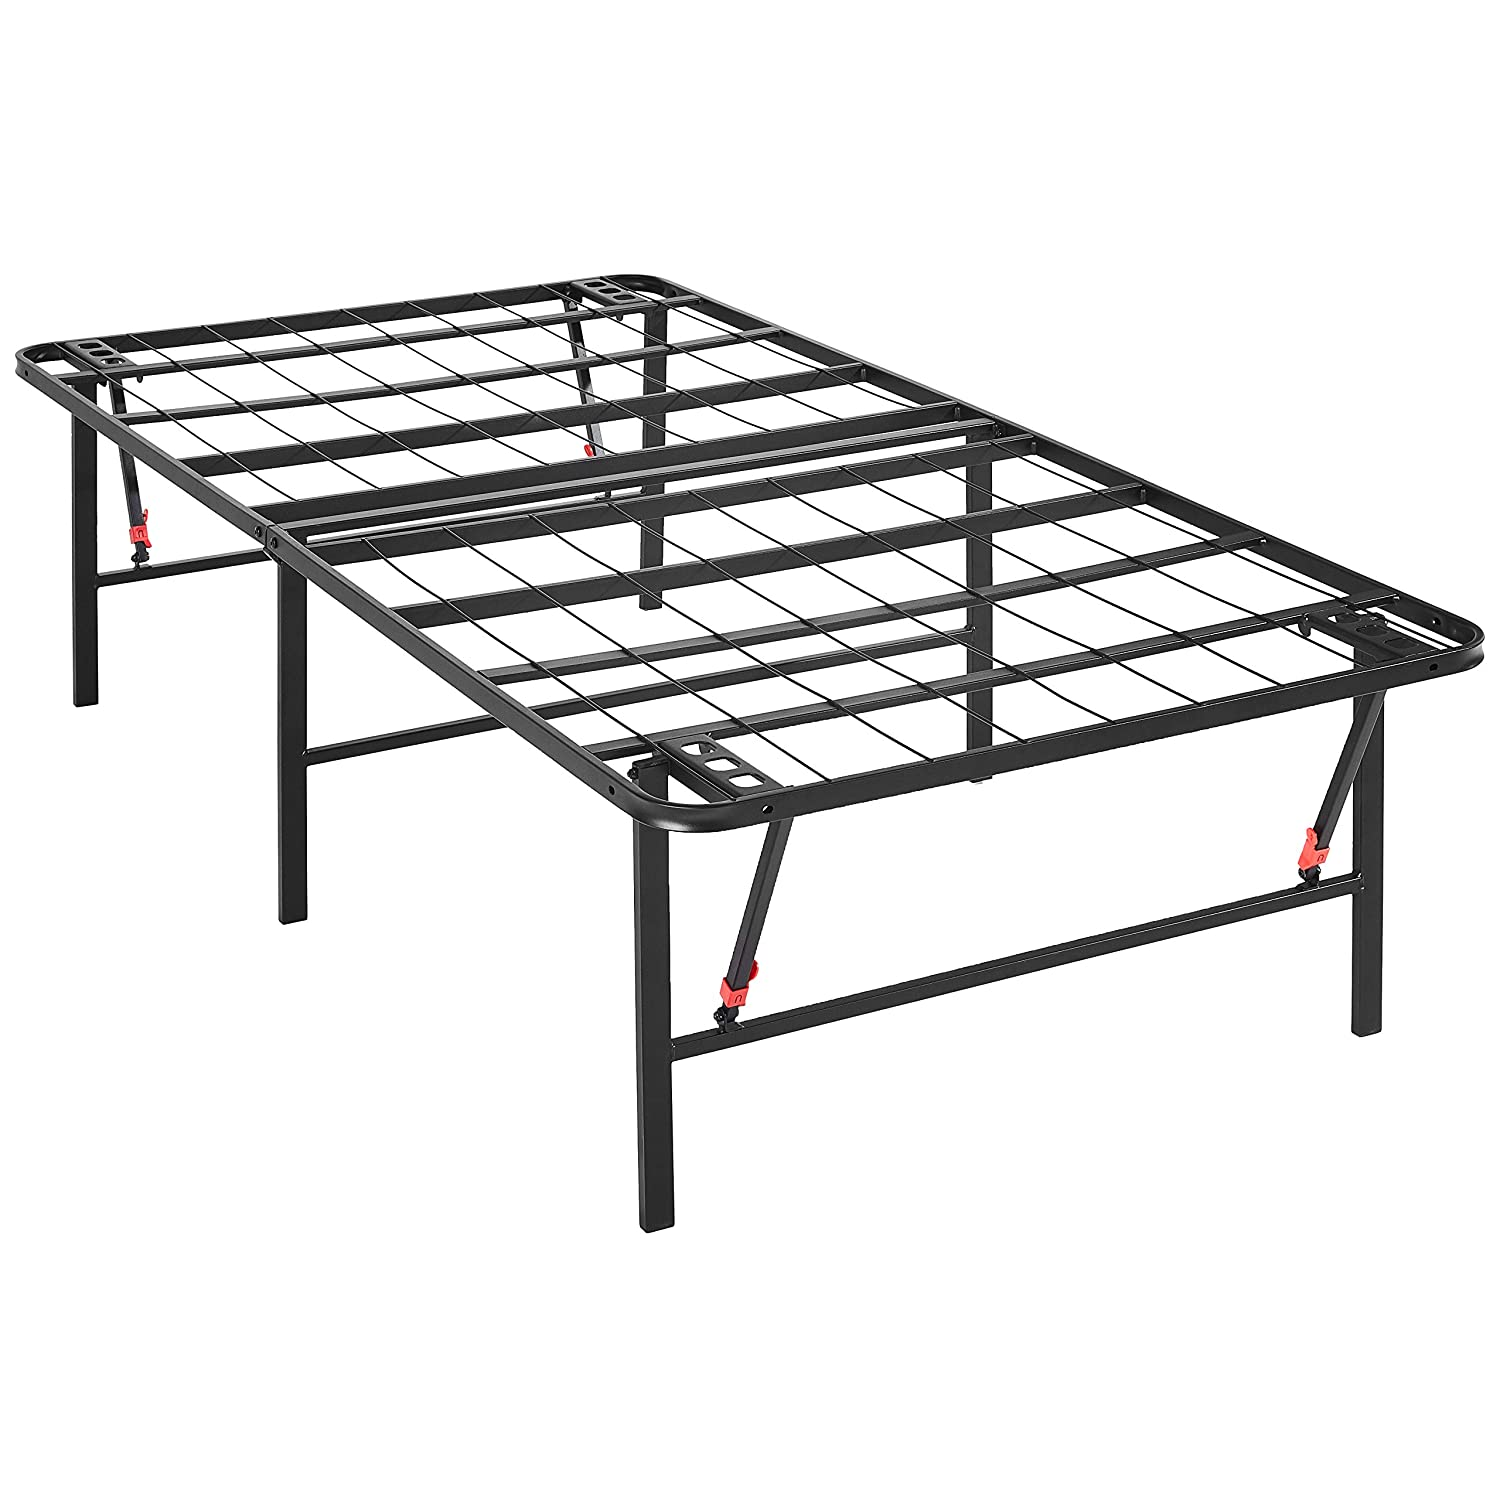 AmazonBasics Foldable Platform Bed Frame, Tool-Free Assembly, 18 Inch Height for Under-Bed Storage, Twin